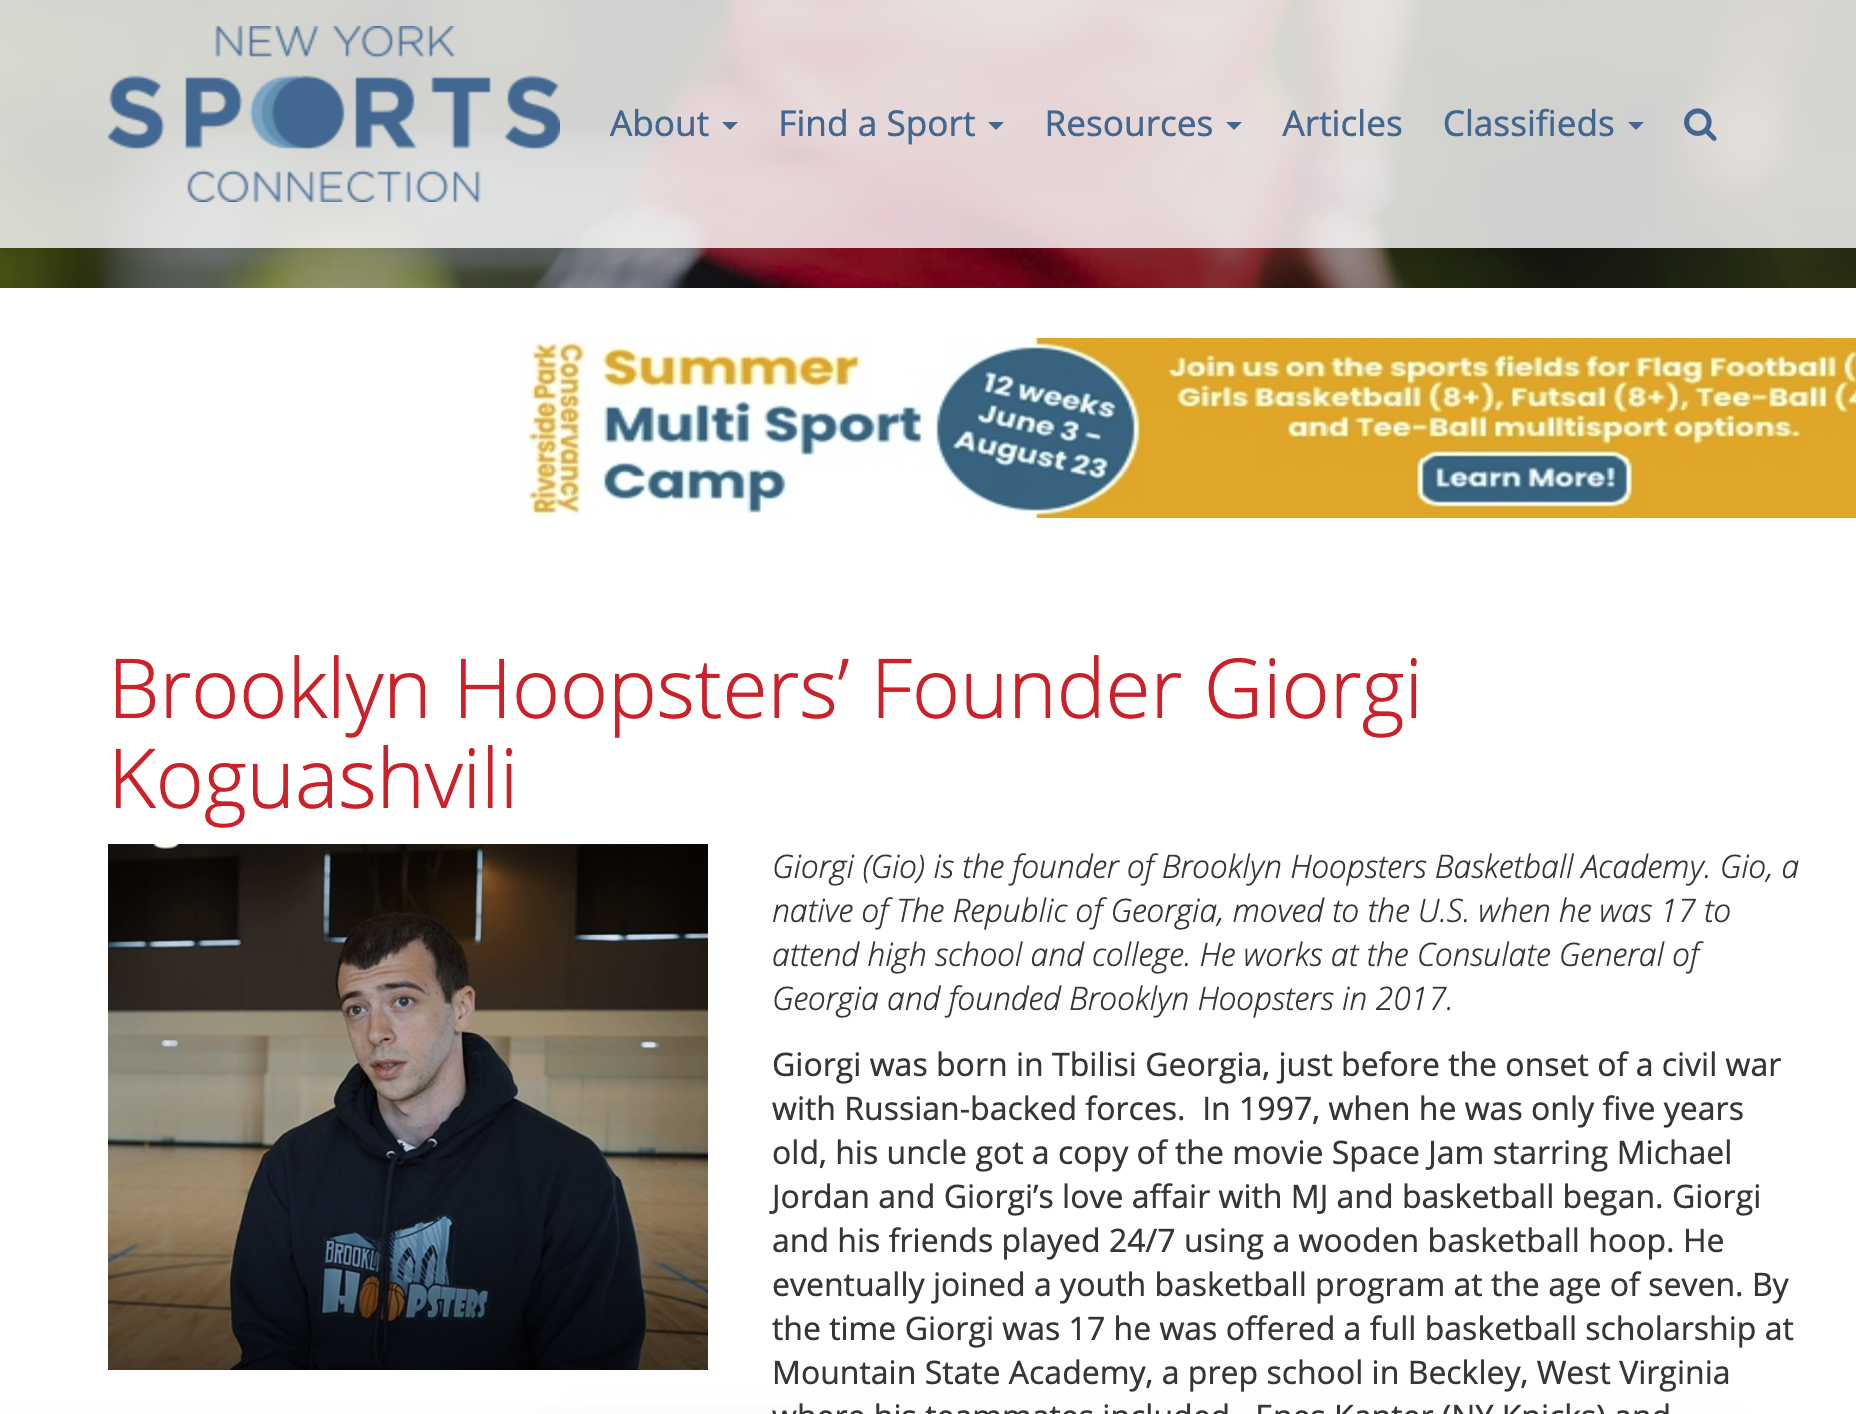 NEW YORK SPORTS CONNECTION - Profile on our founder, Giorgi Koguashvili